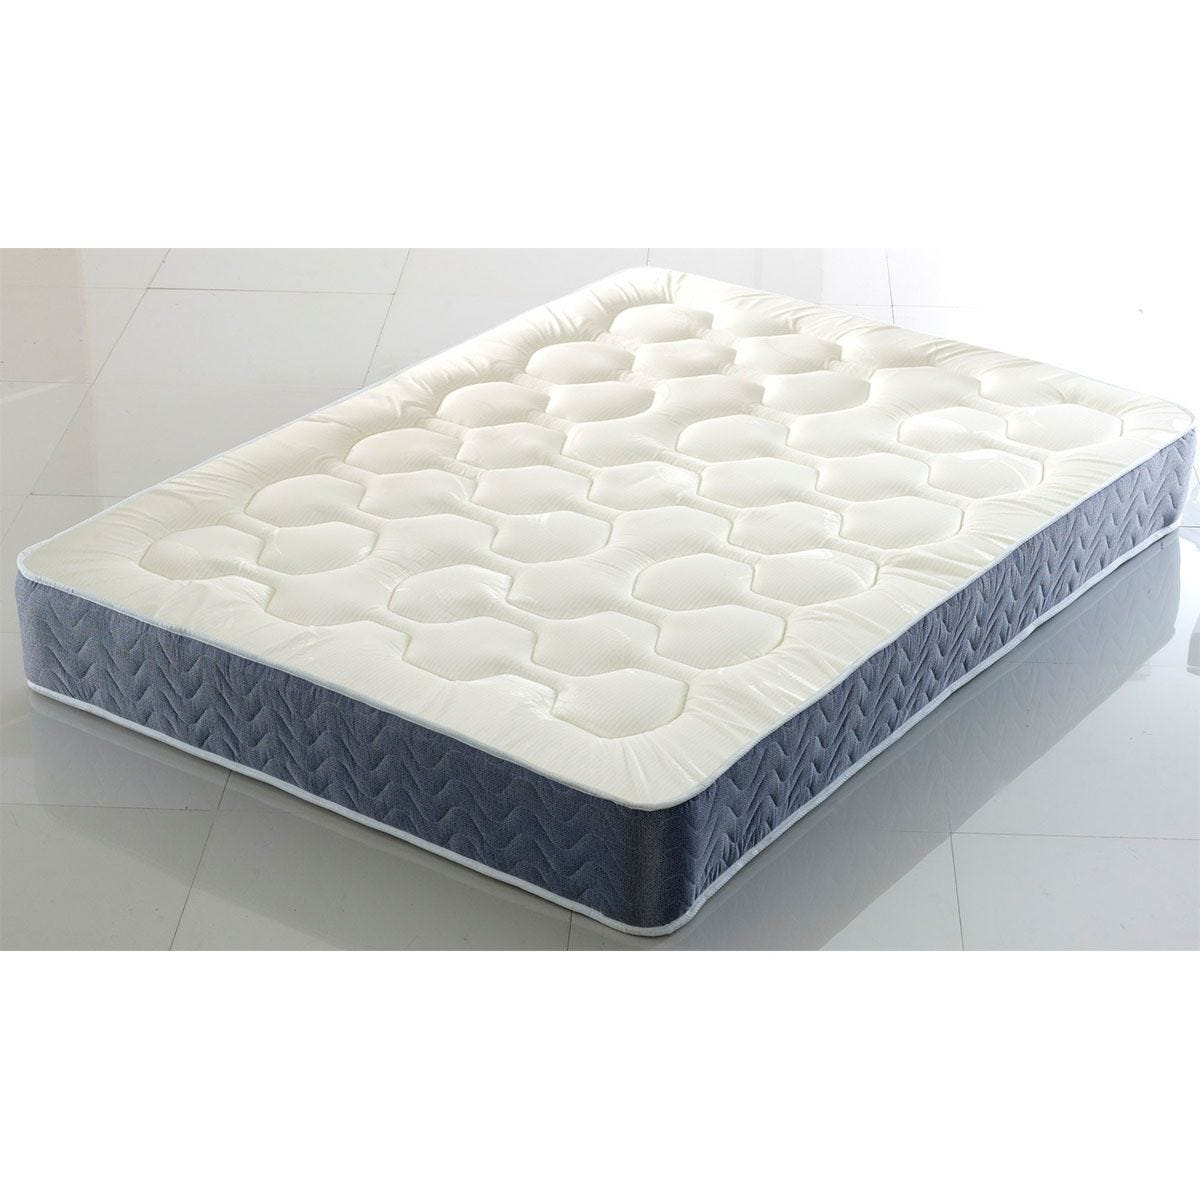 Comfy Deluxe Quilted Memory Orthopaedic Mattress - Grey